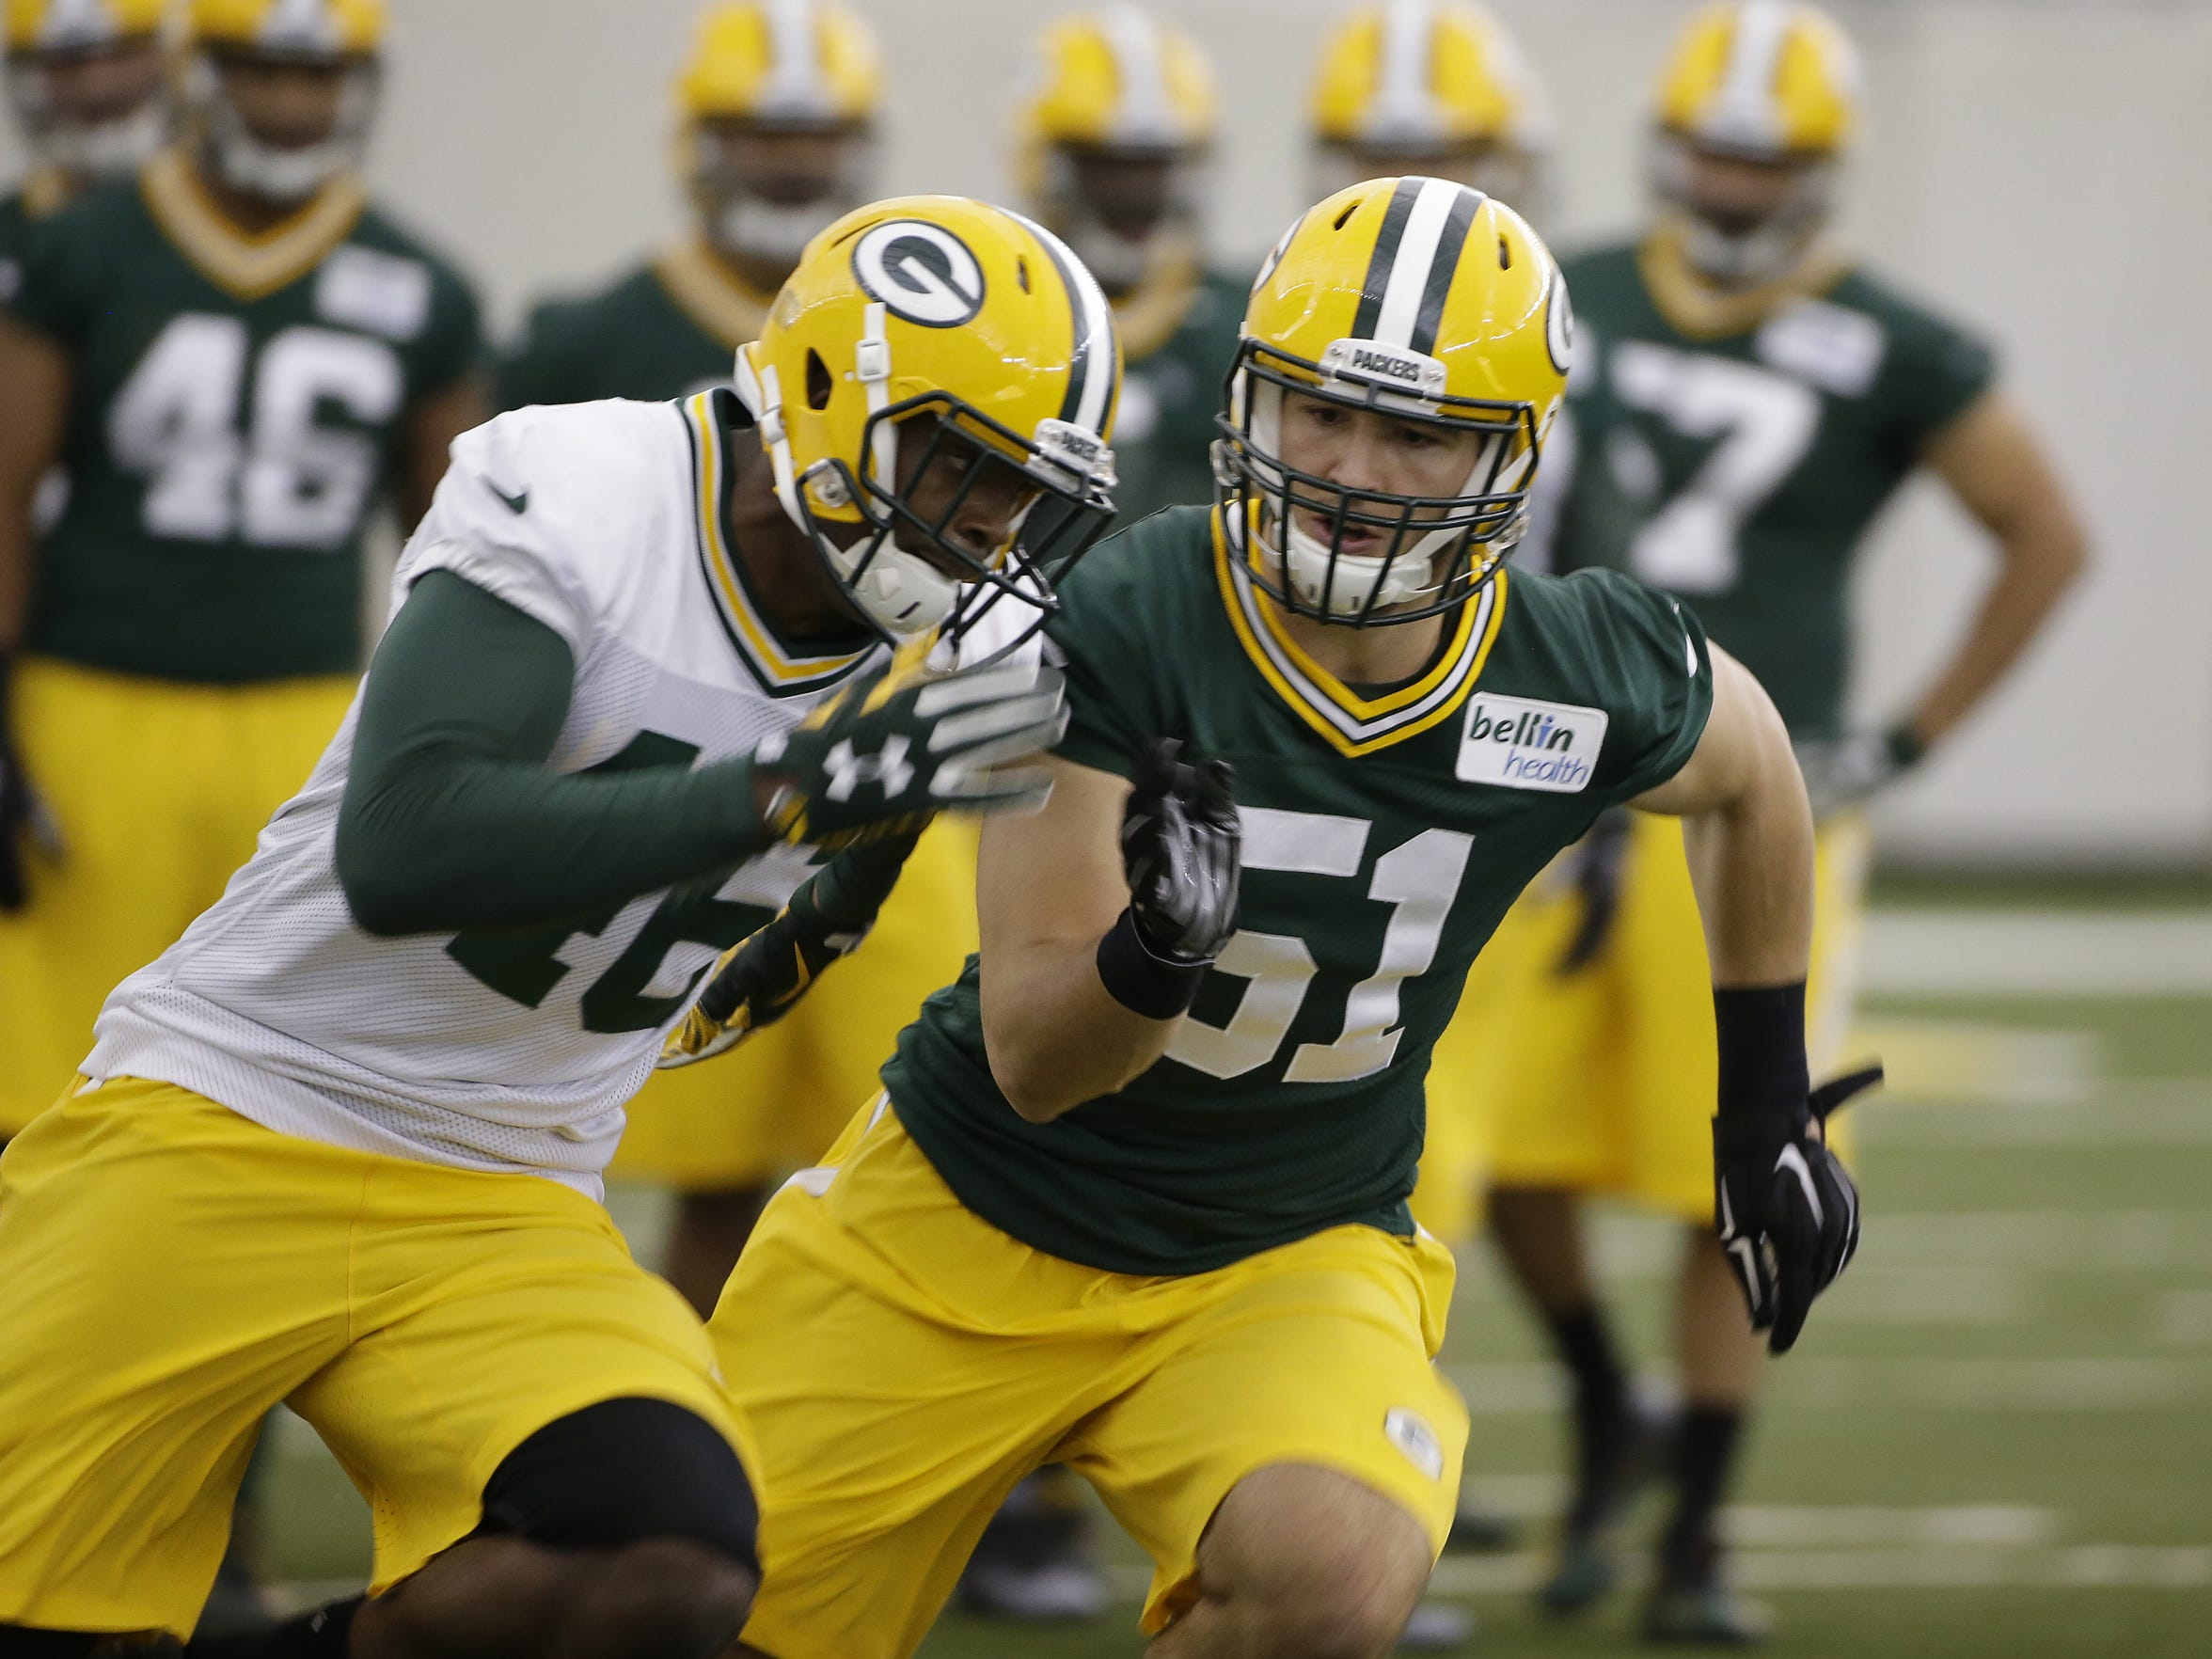 Green Bay Packers draft pick Kyler Fackrell (51) drills during rookie camp practice in the Don Hutson Center.